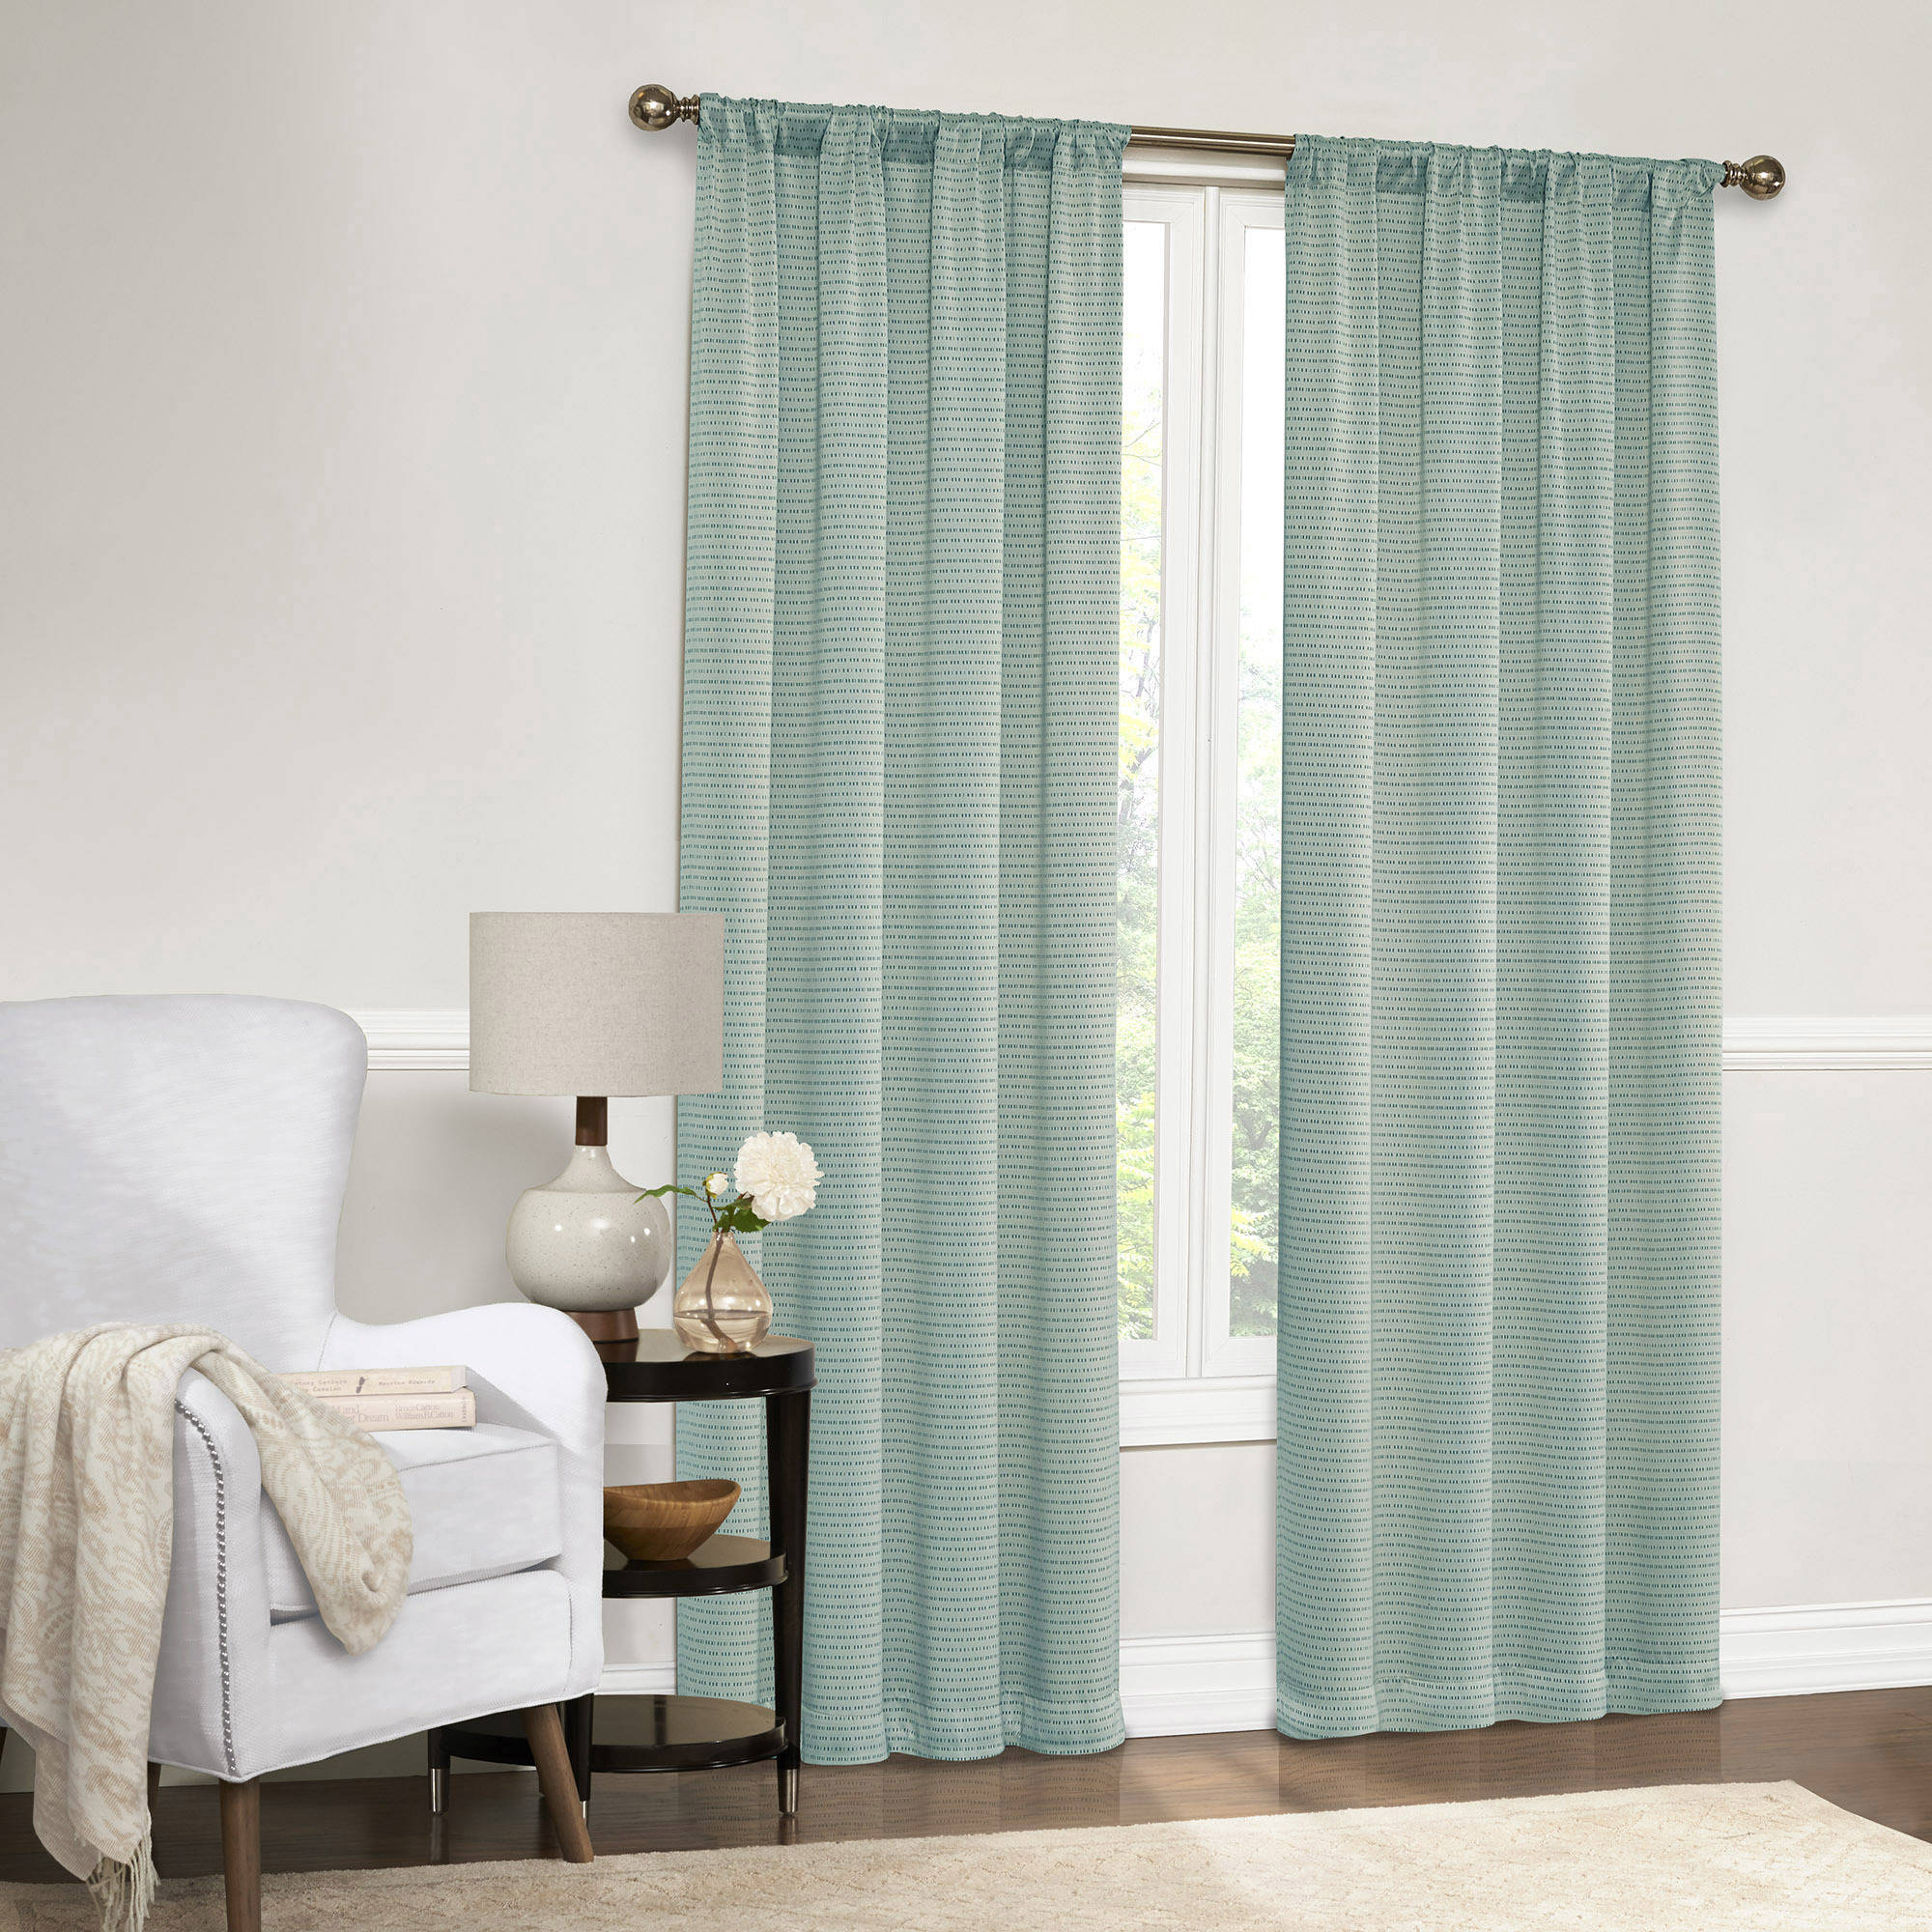 Mainstays Dotted Room Darkening Curtain Panel in Multiple Sizes by Ellery Homestyles